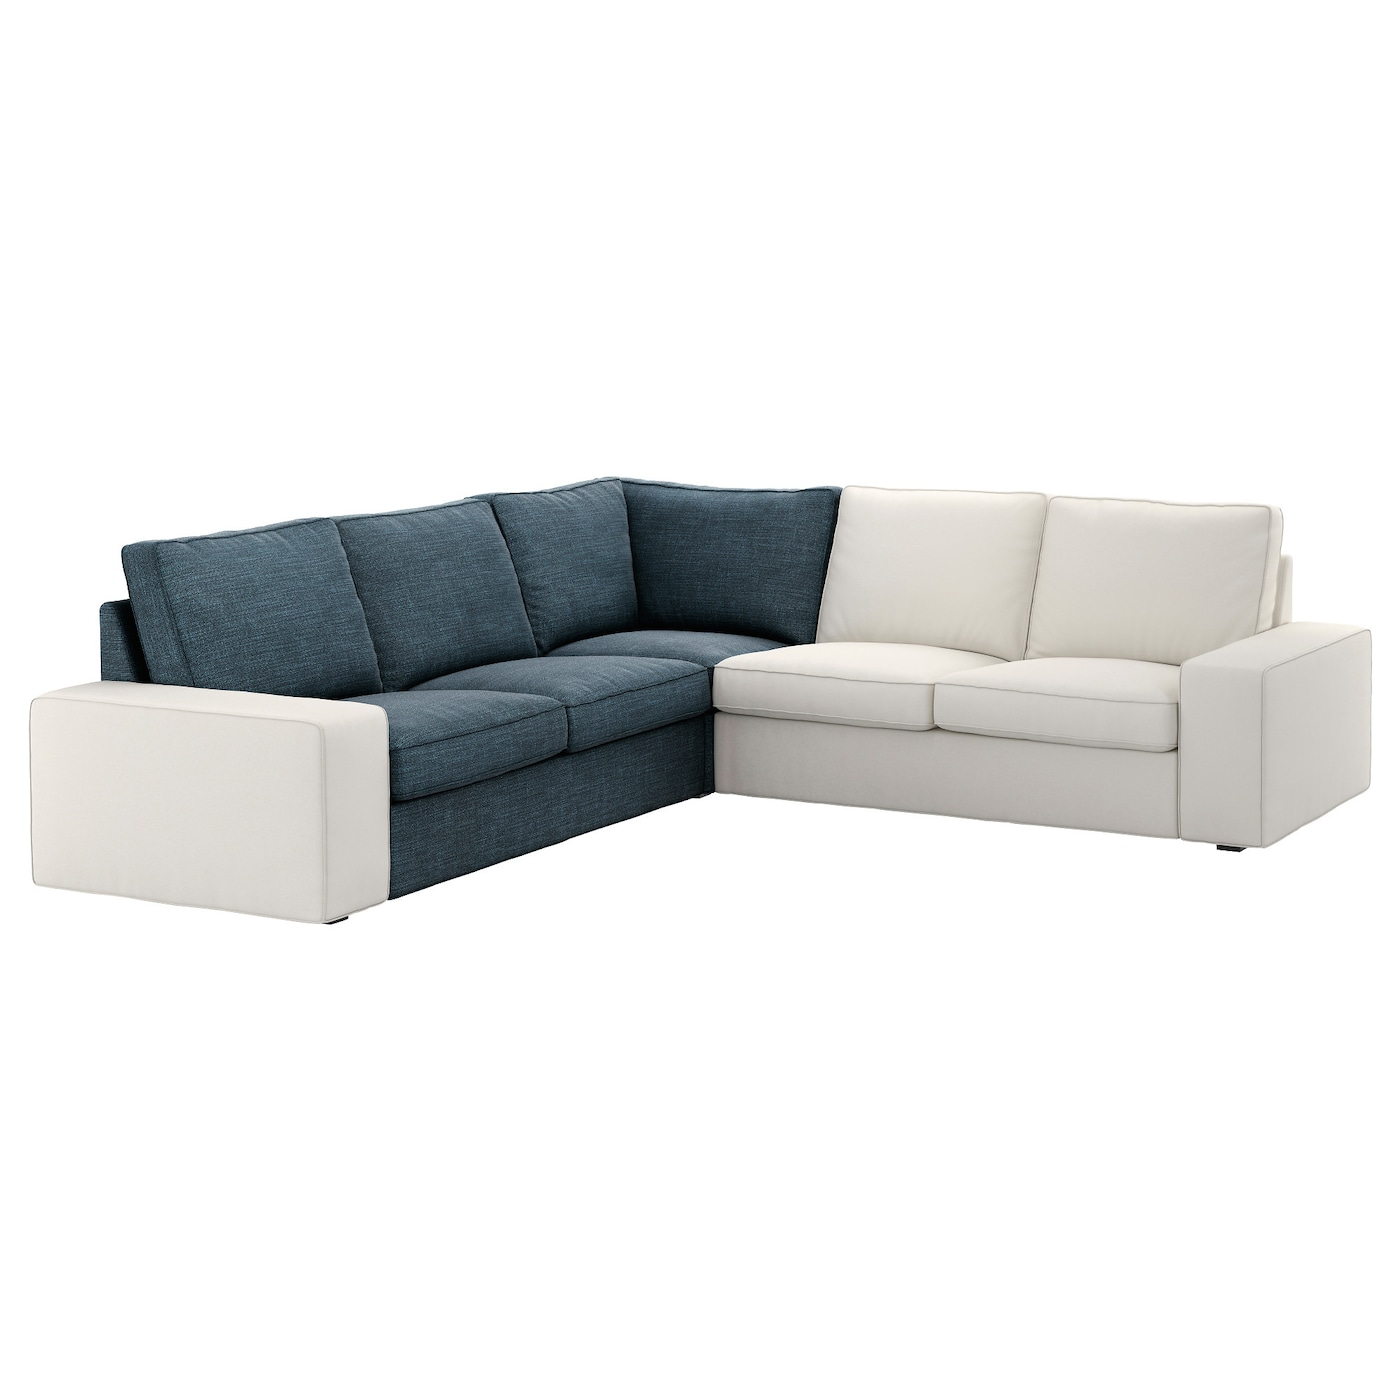 ikea modular sofa a colour modular sofa with a chaise